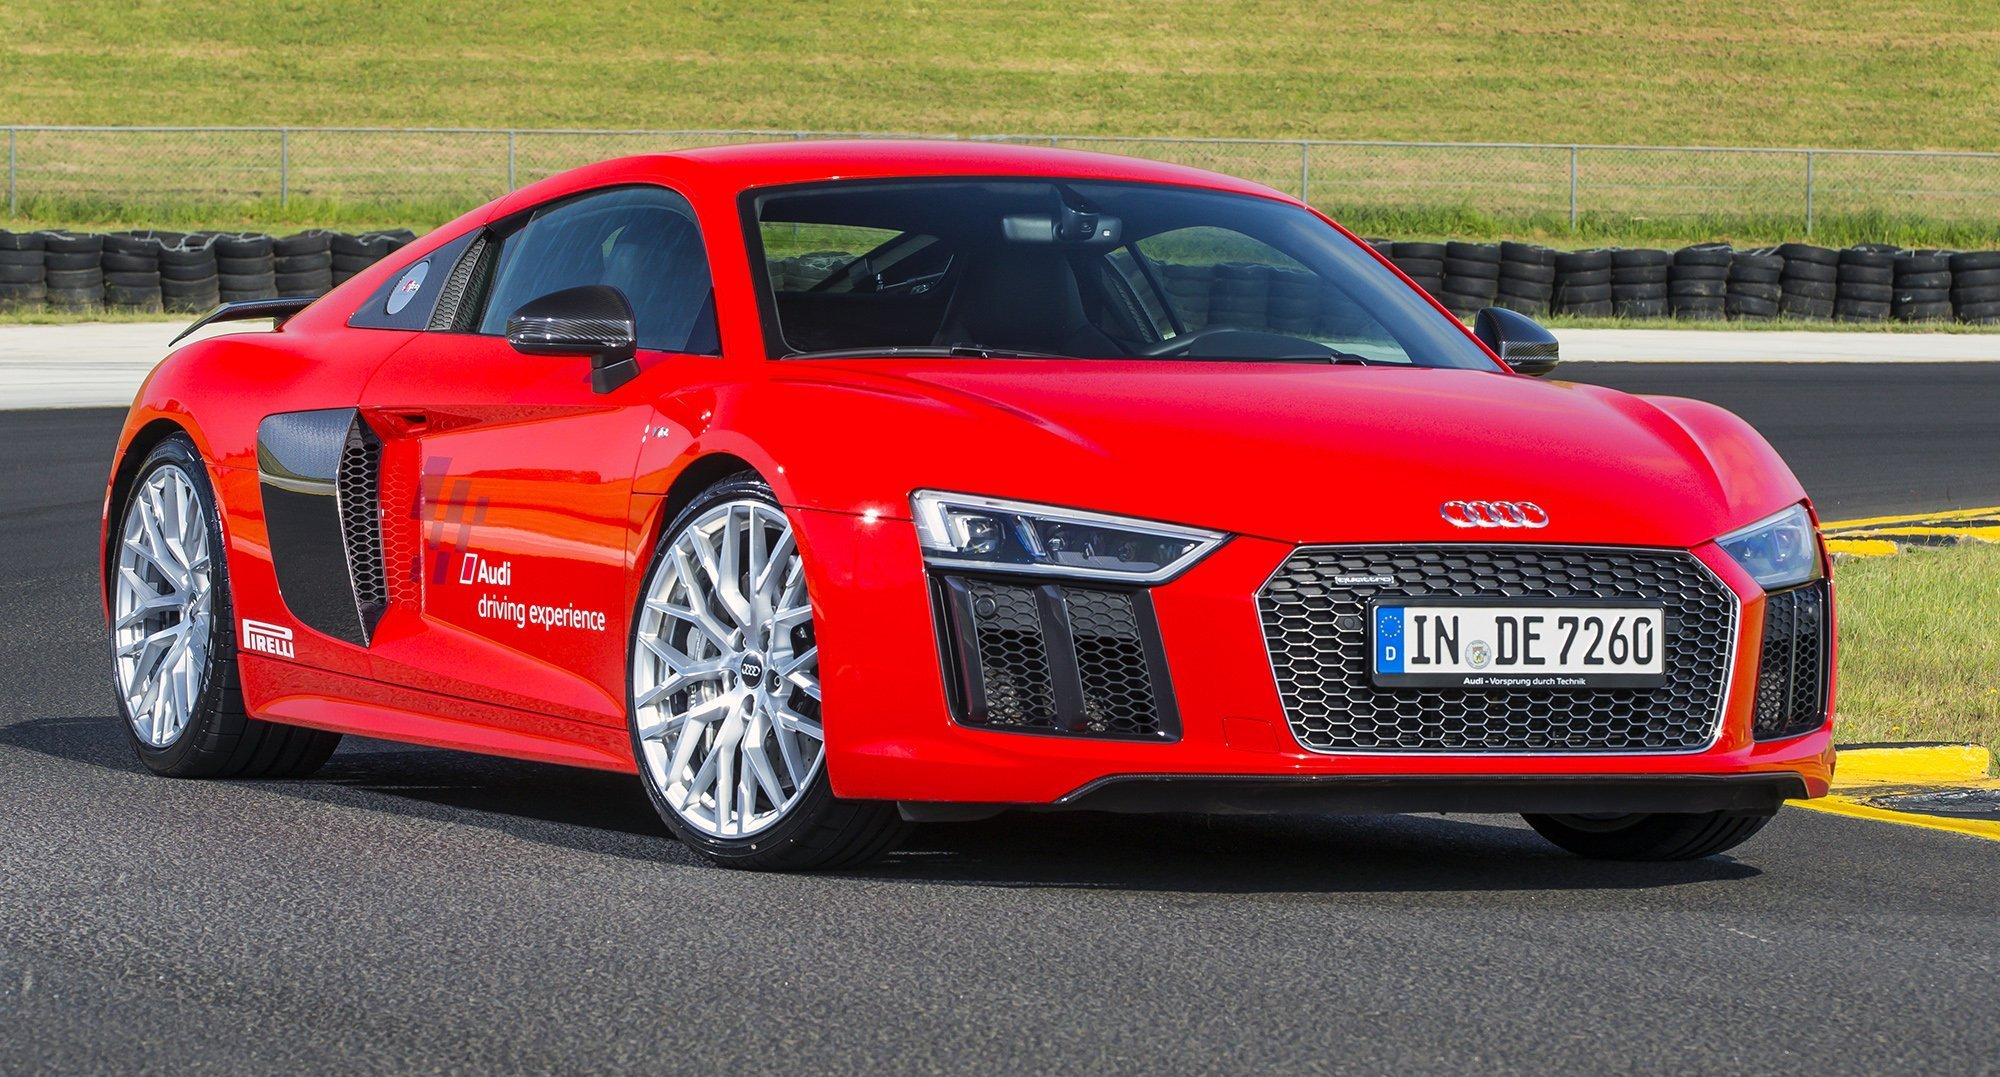 New 2016 Audi R8 V10 R8 V10 Plus Pricing And Specifications On This Month